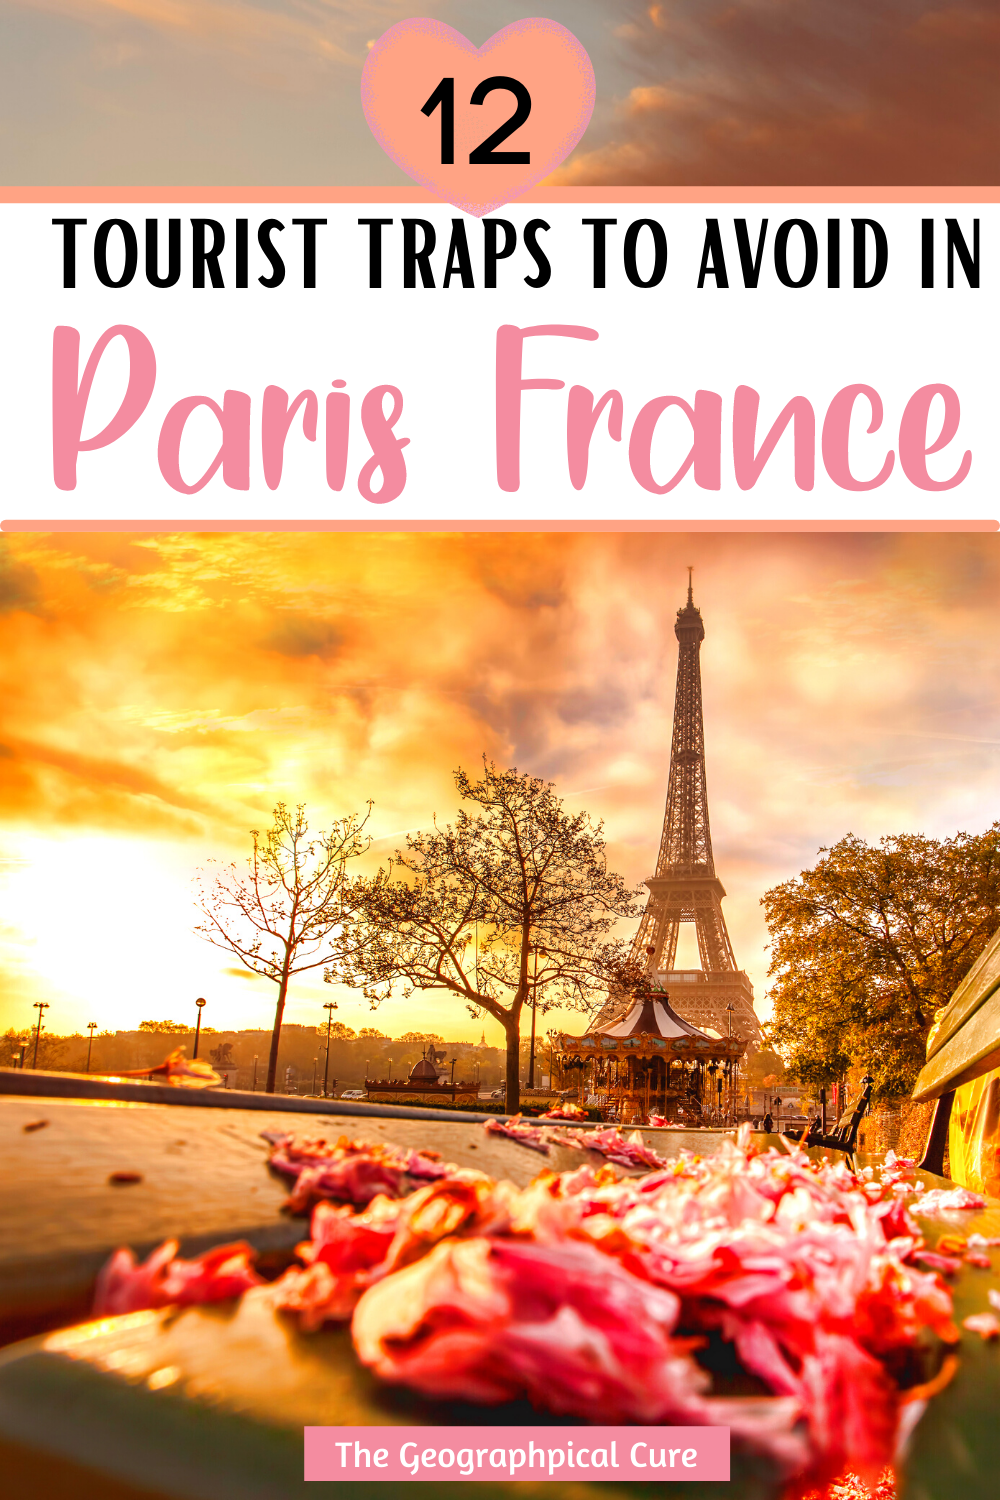 guide to the tourist traps to skip in Paris